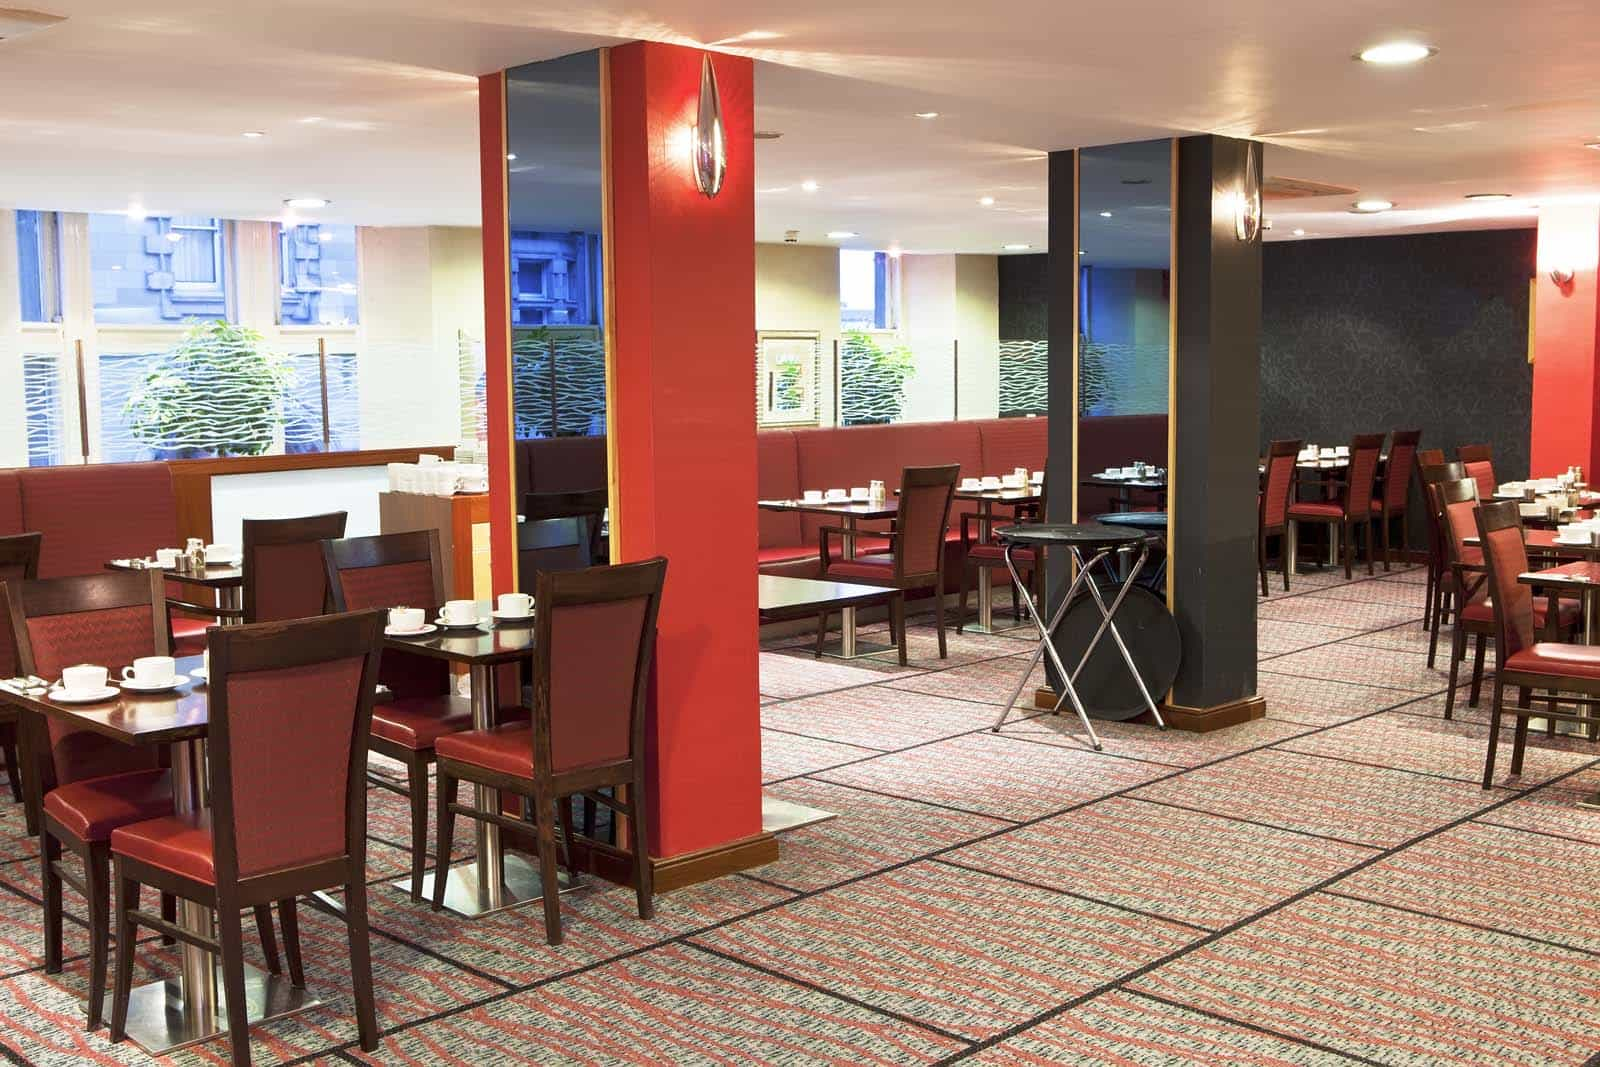 SeviceMaster Clean the hotel, restaurant, and leisure clubs choice in Devon for superbly clean floors